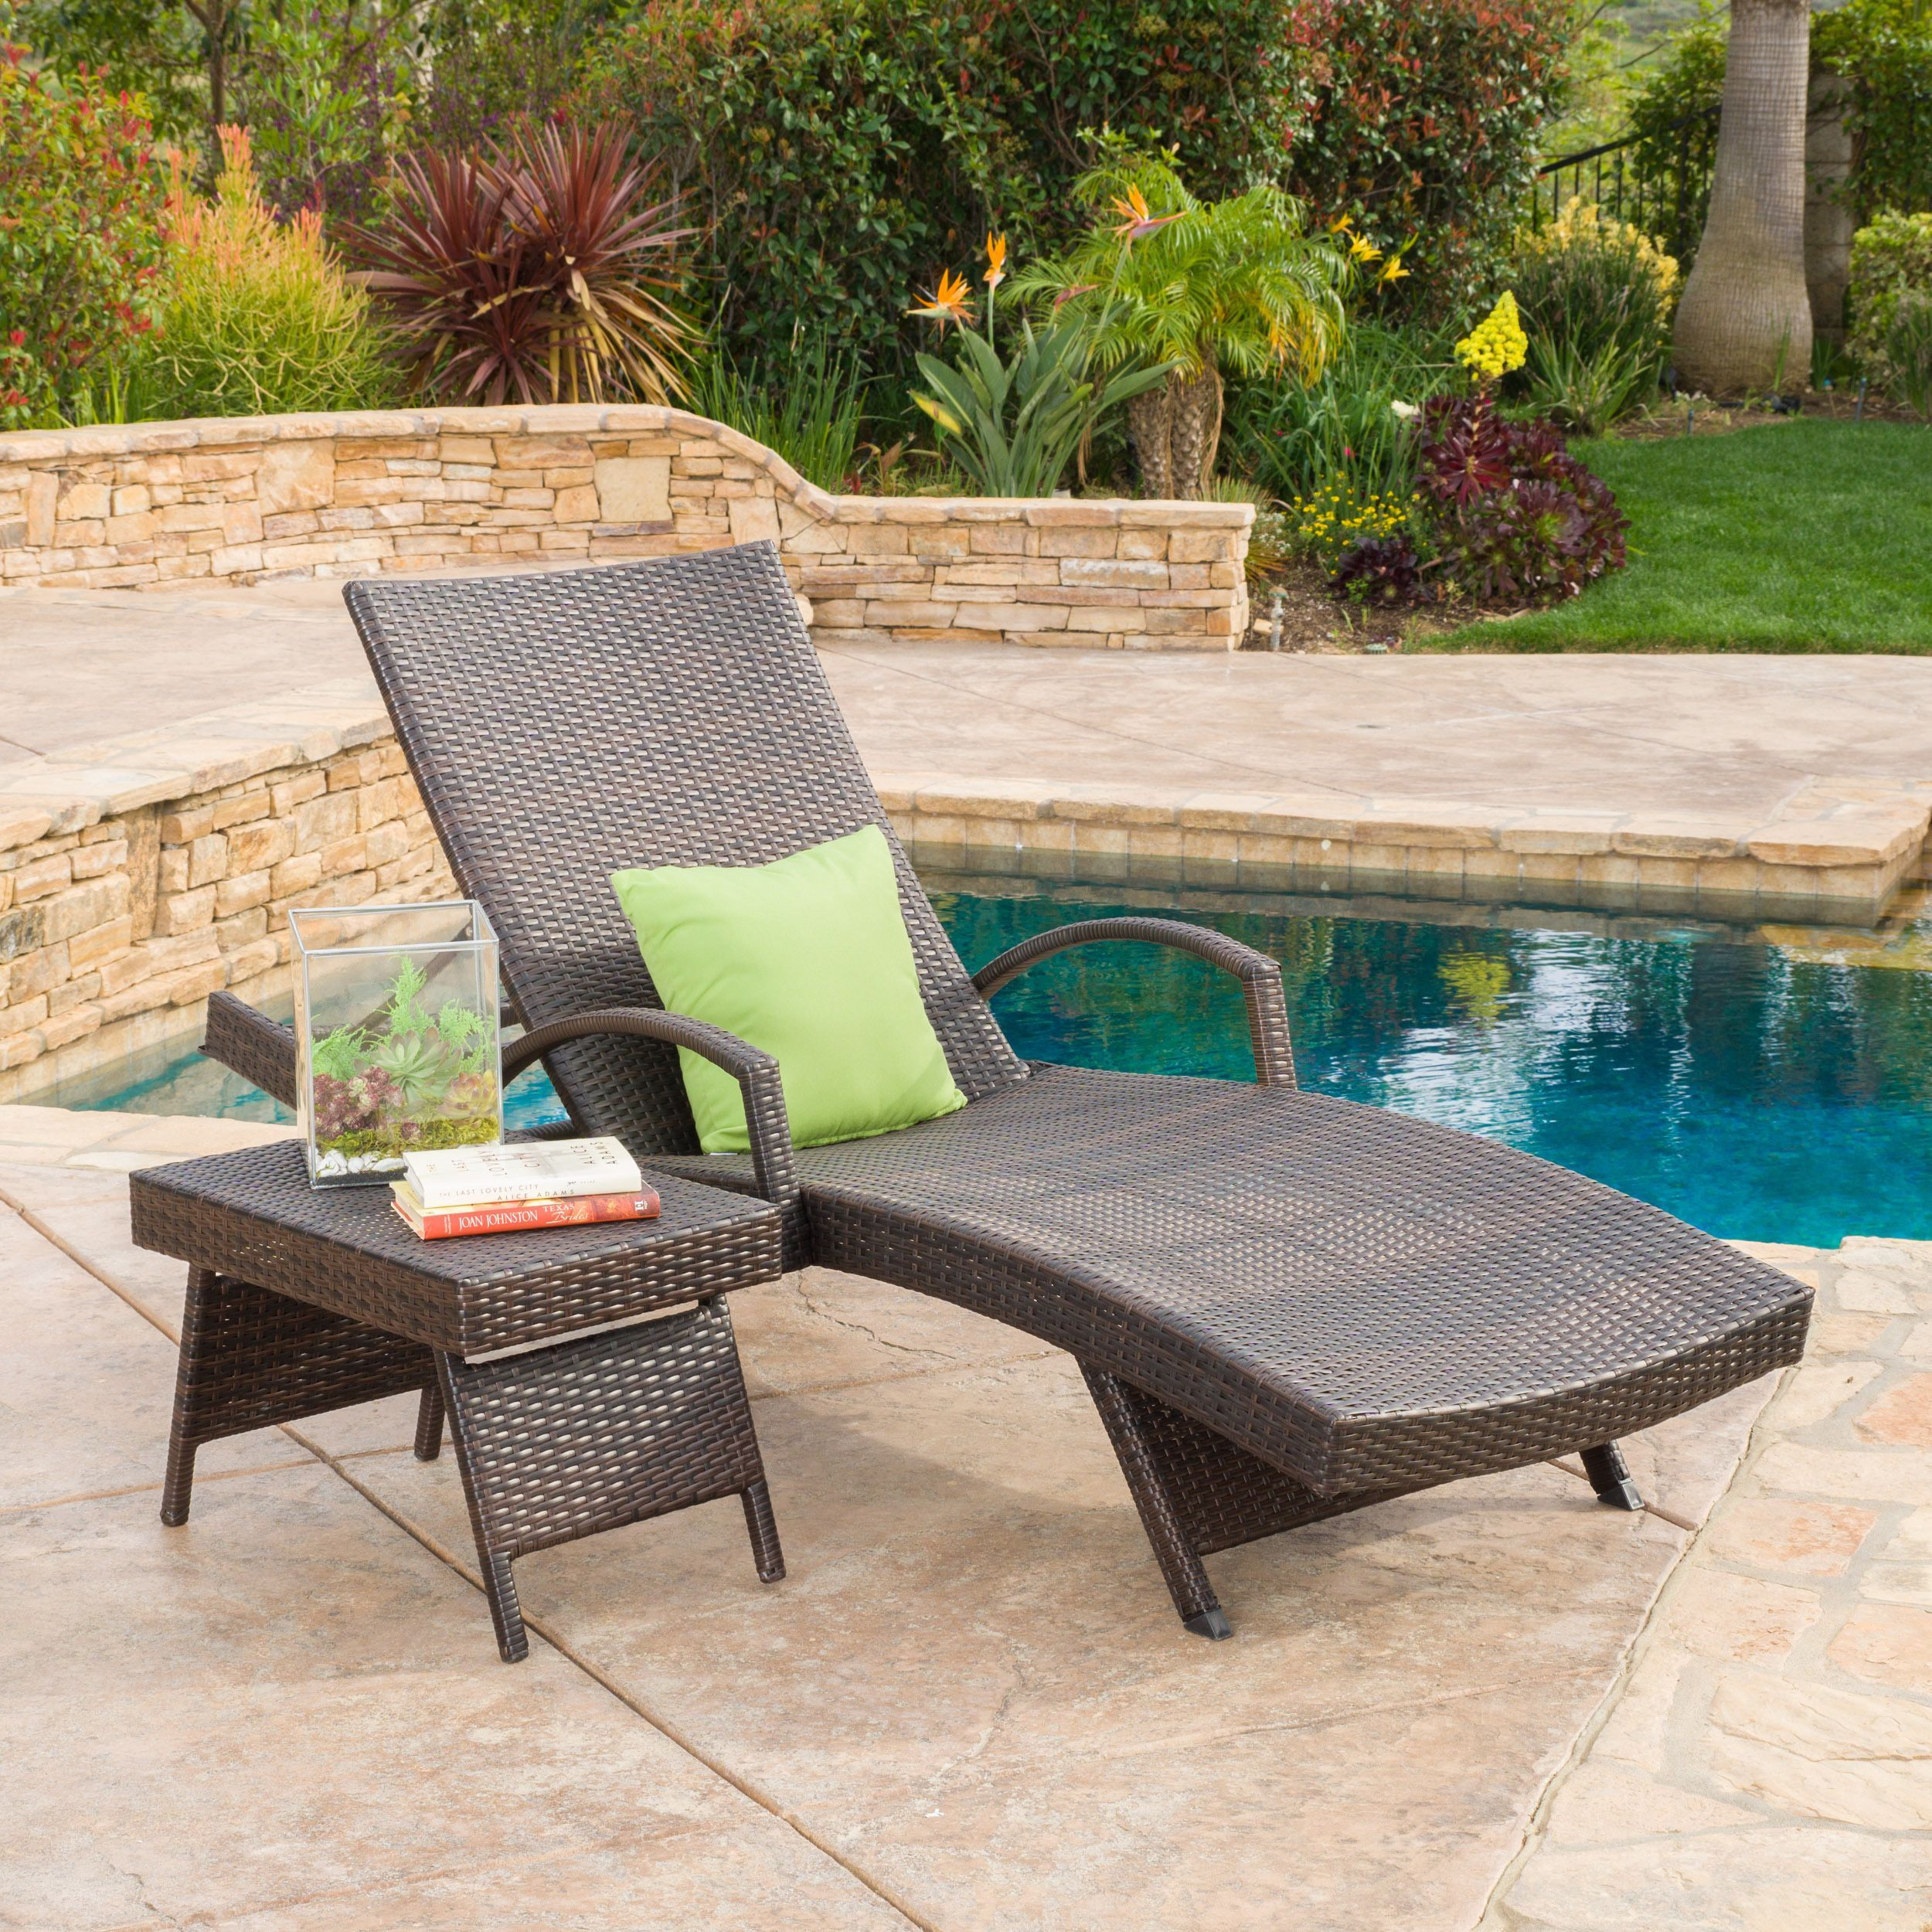 add some stylish comfort to your patio decor with this wicker lounge rh pinterest com